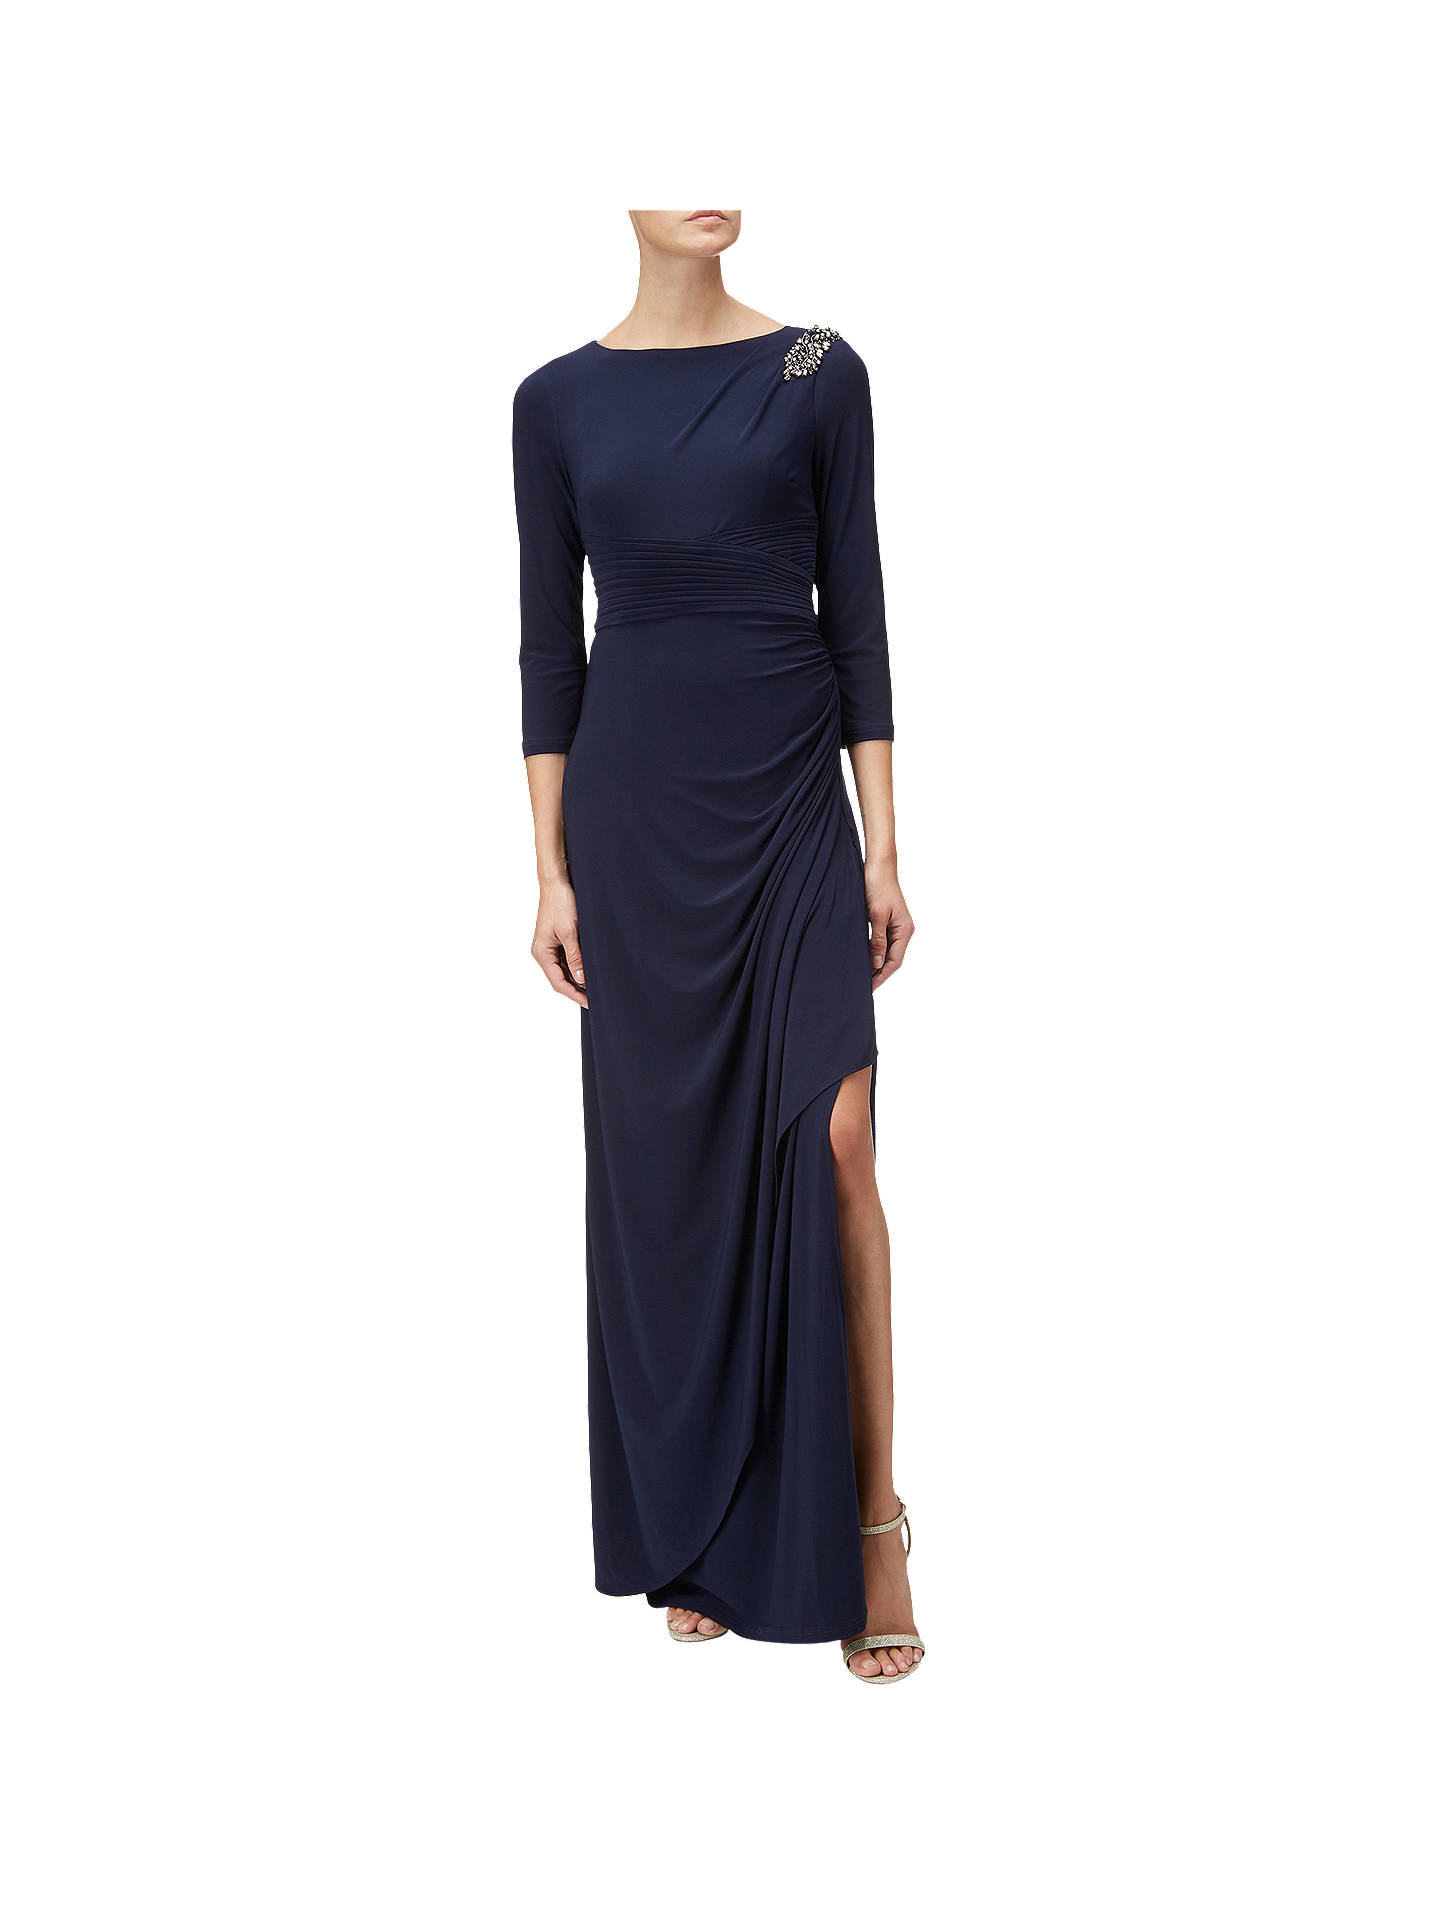 66e10240b4c3 Buy Adrianna Papell Long Matte Jersey Dress, Midnight, 8 Online at  johnlewis.com ...